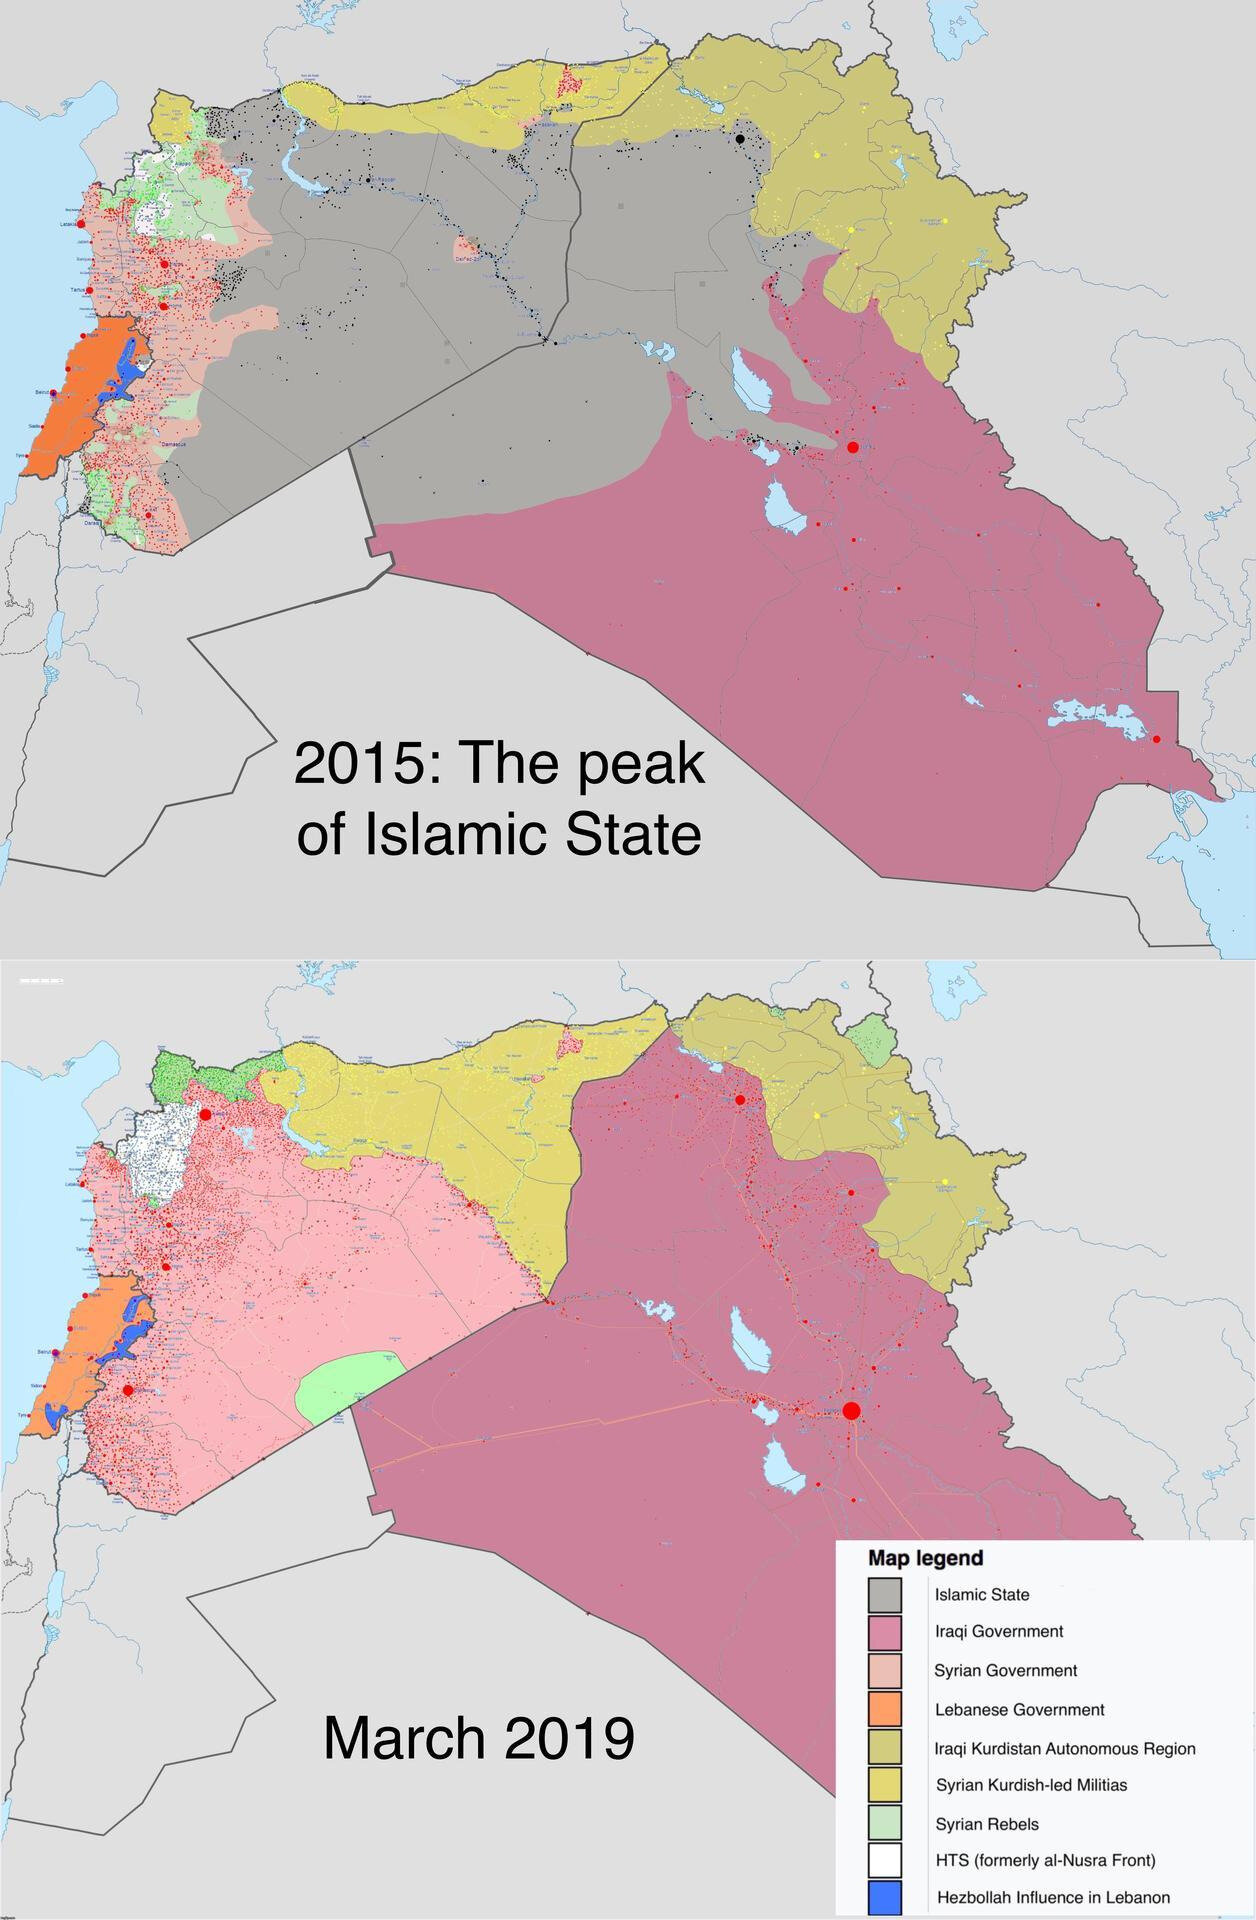 Islamic State, from peak to defeat